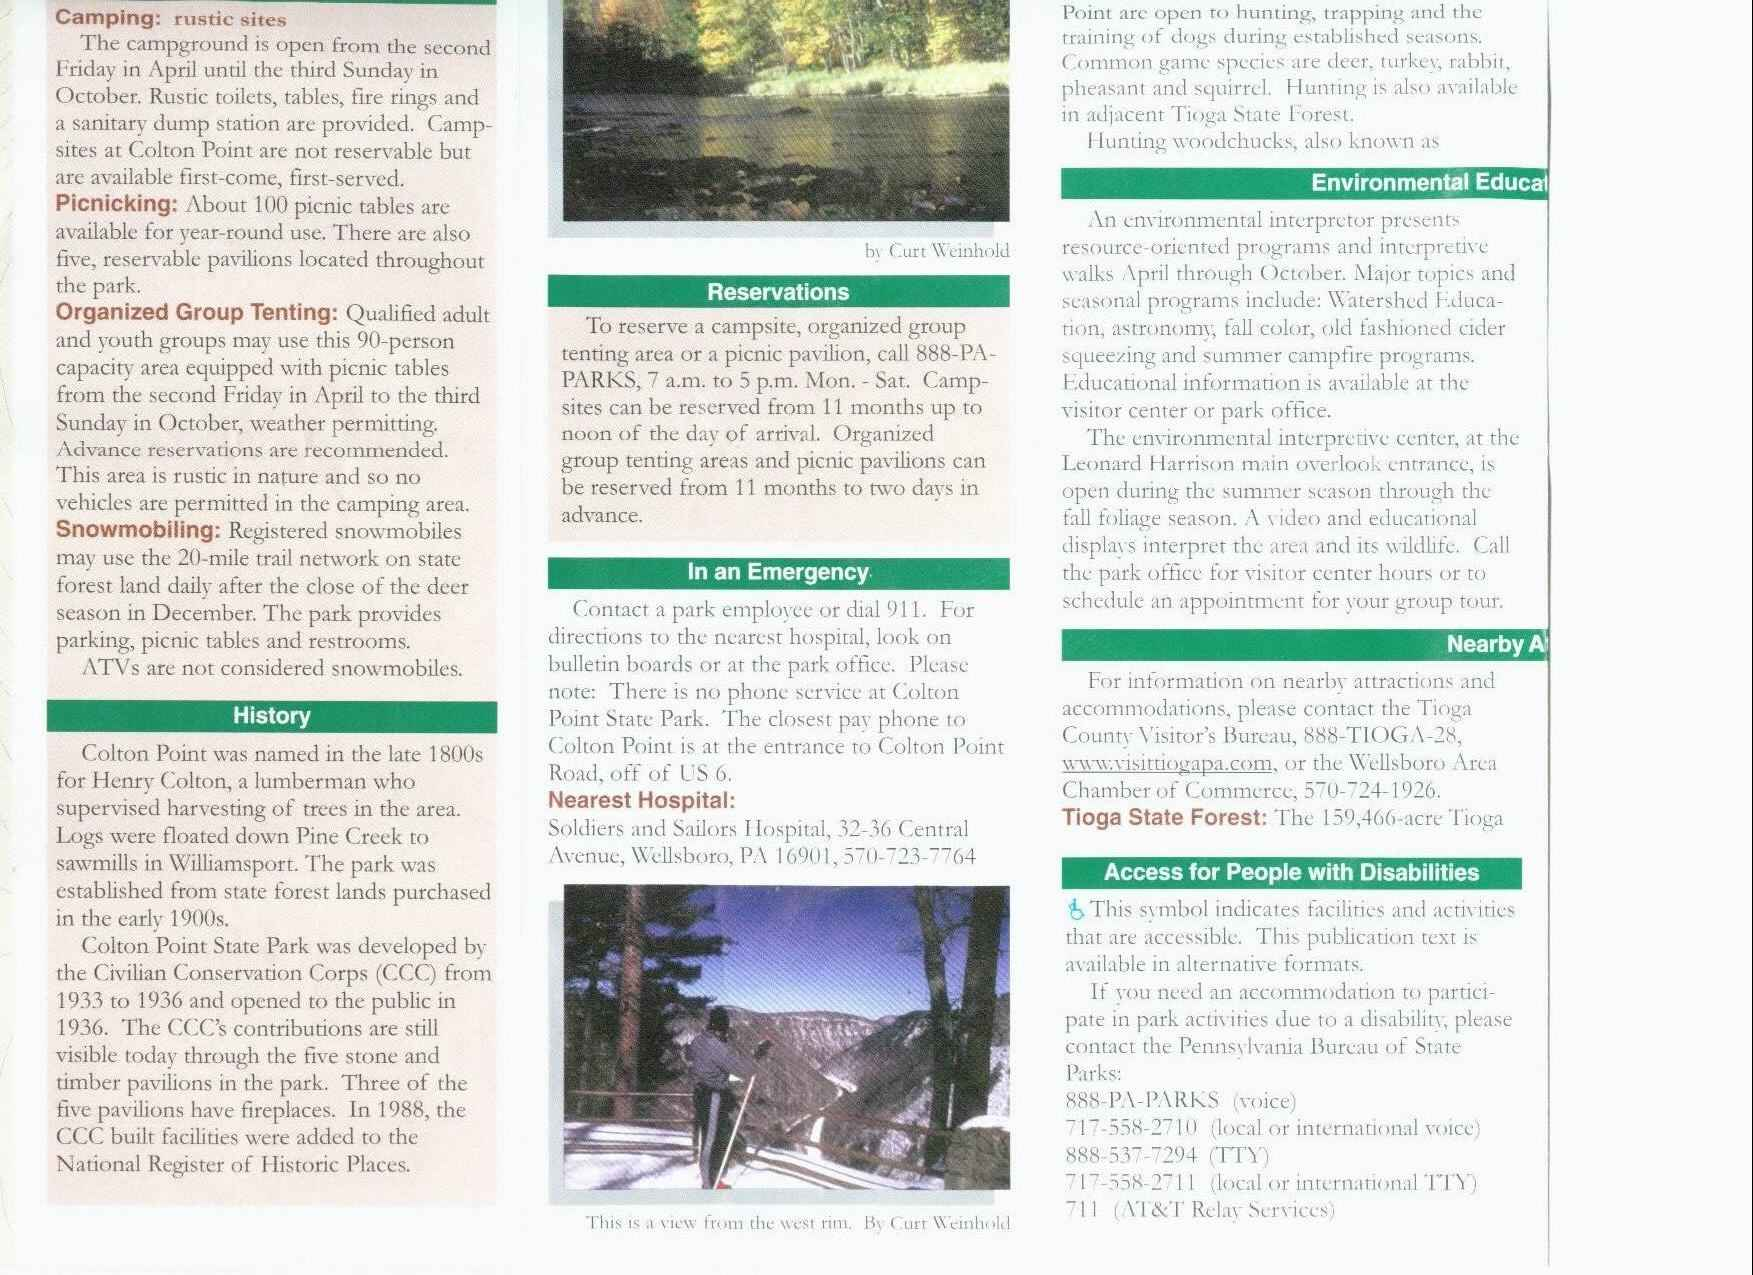 Pennsylvania Grand Canyon Brochure Part 3